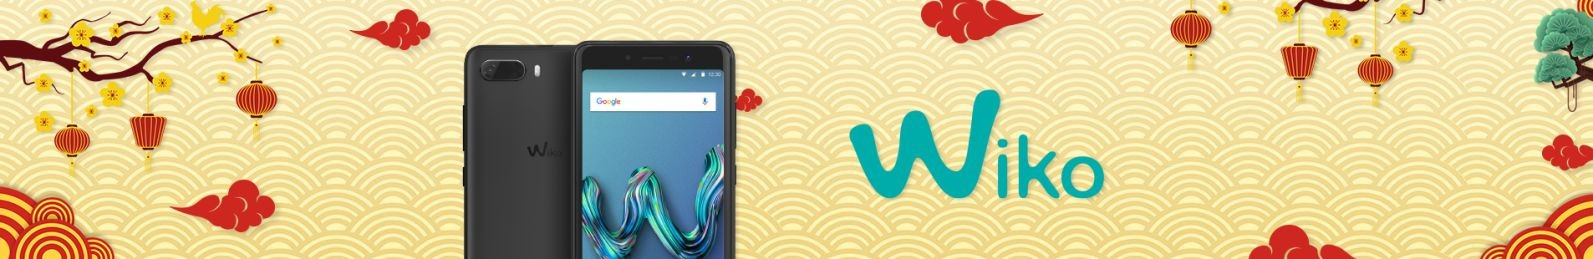 Wiko Official Store